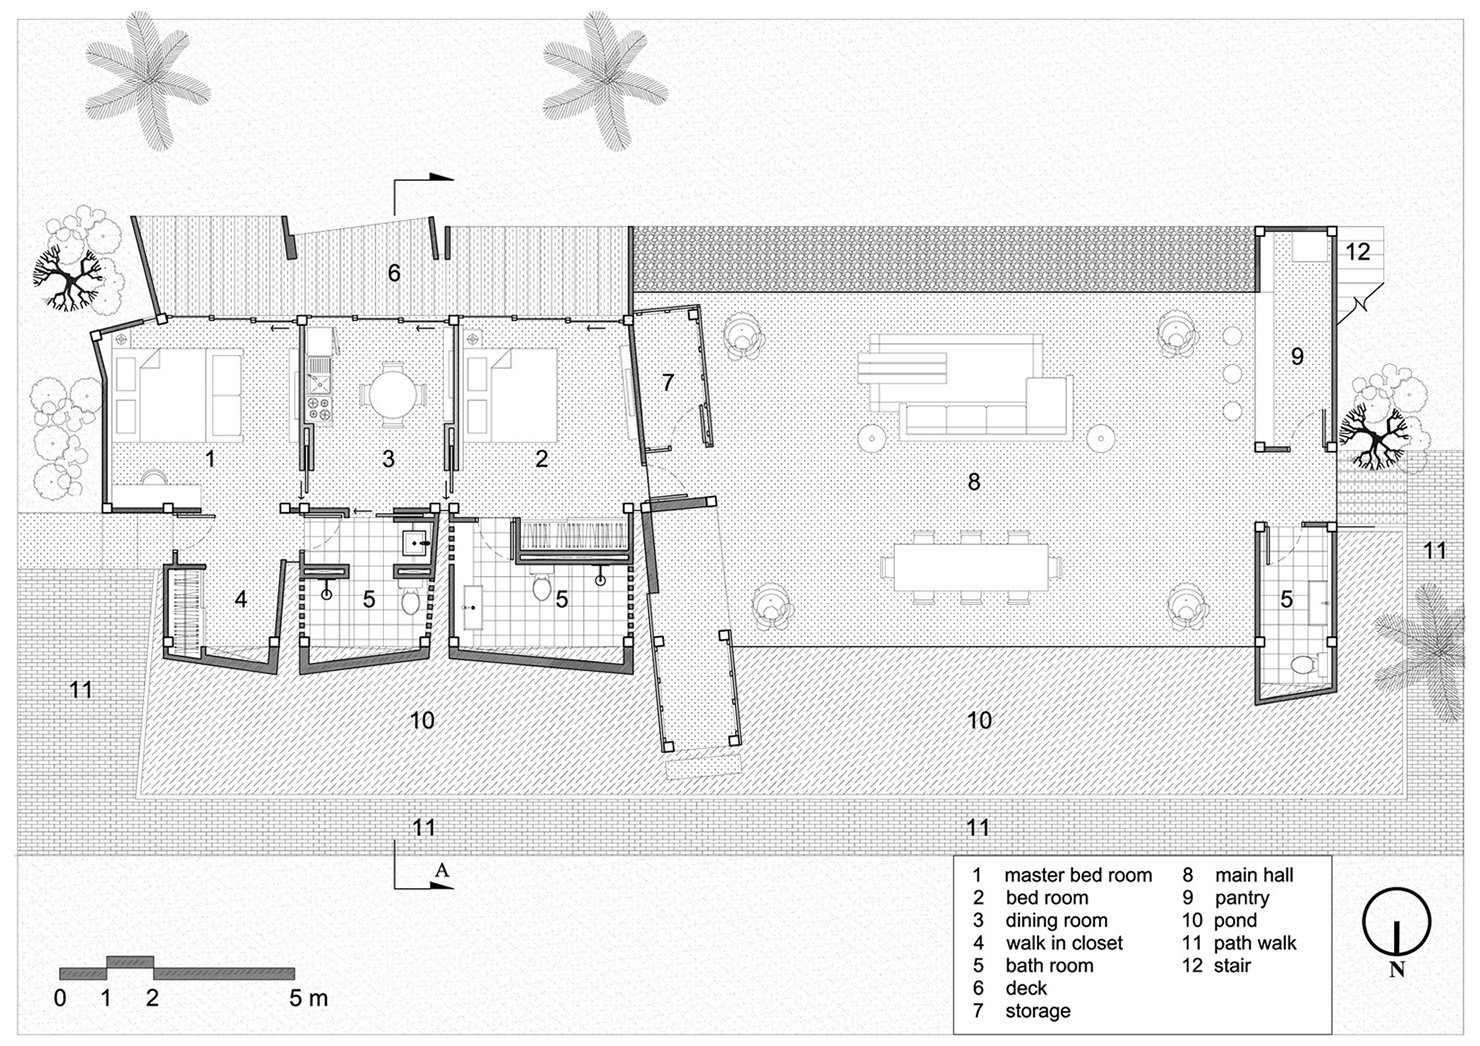 Ground Floor Plan NPDAstudio}